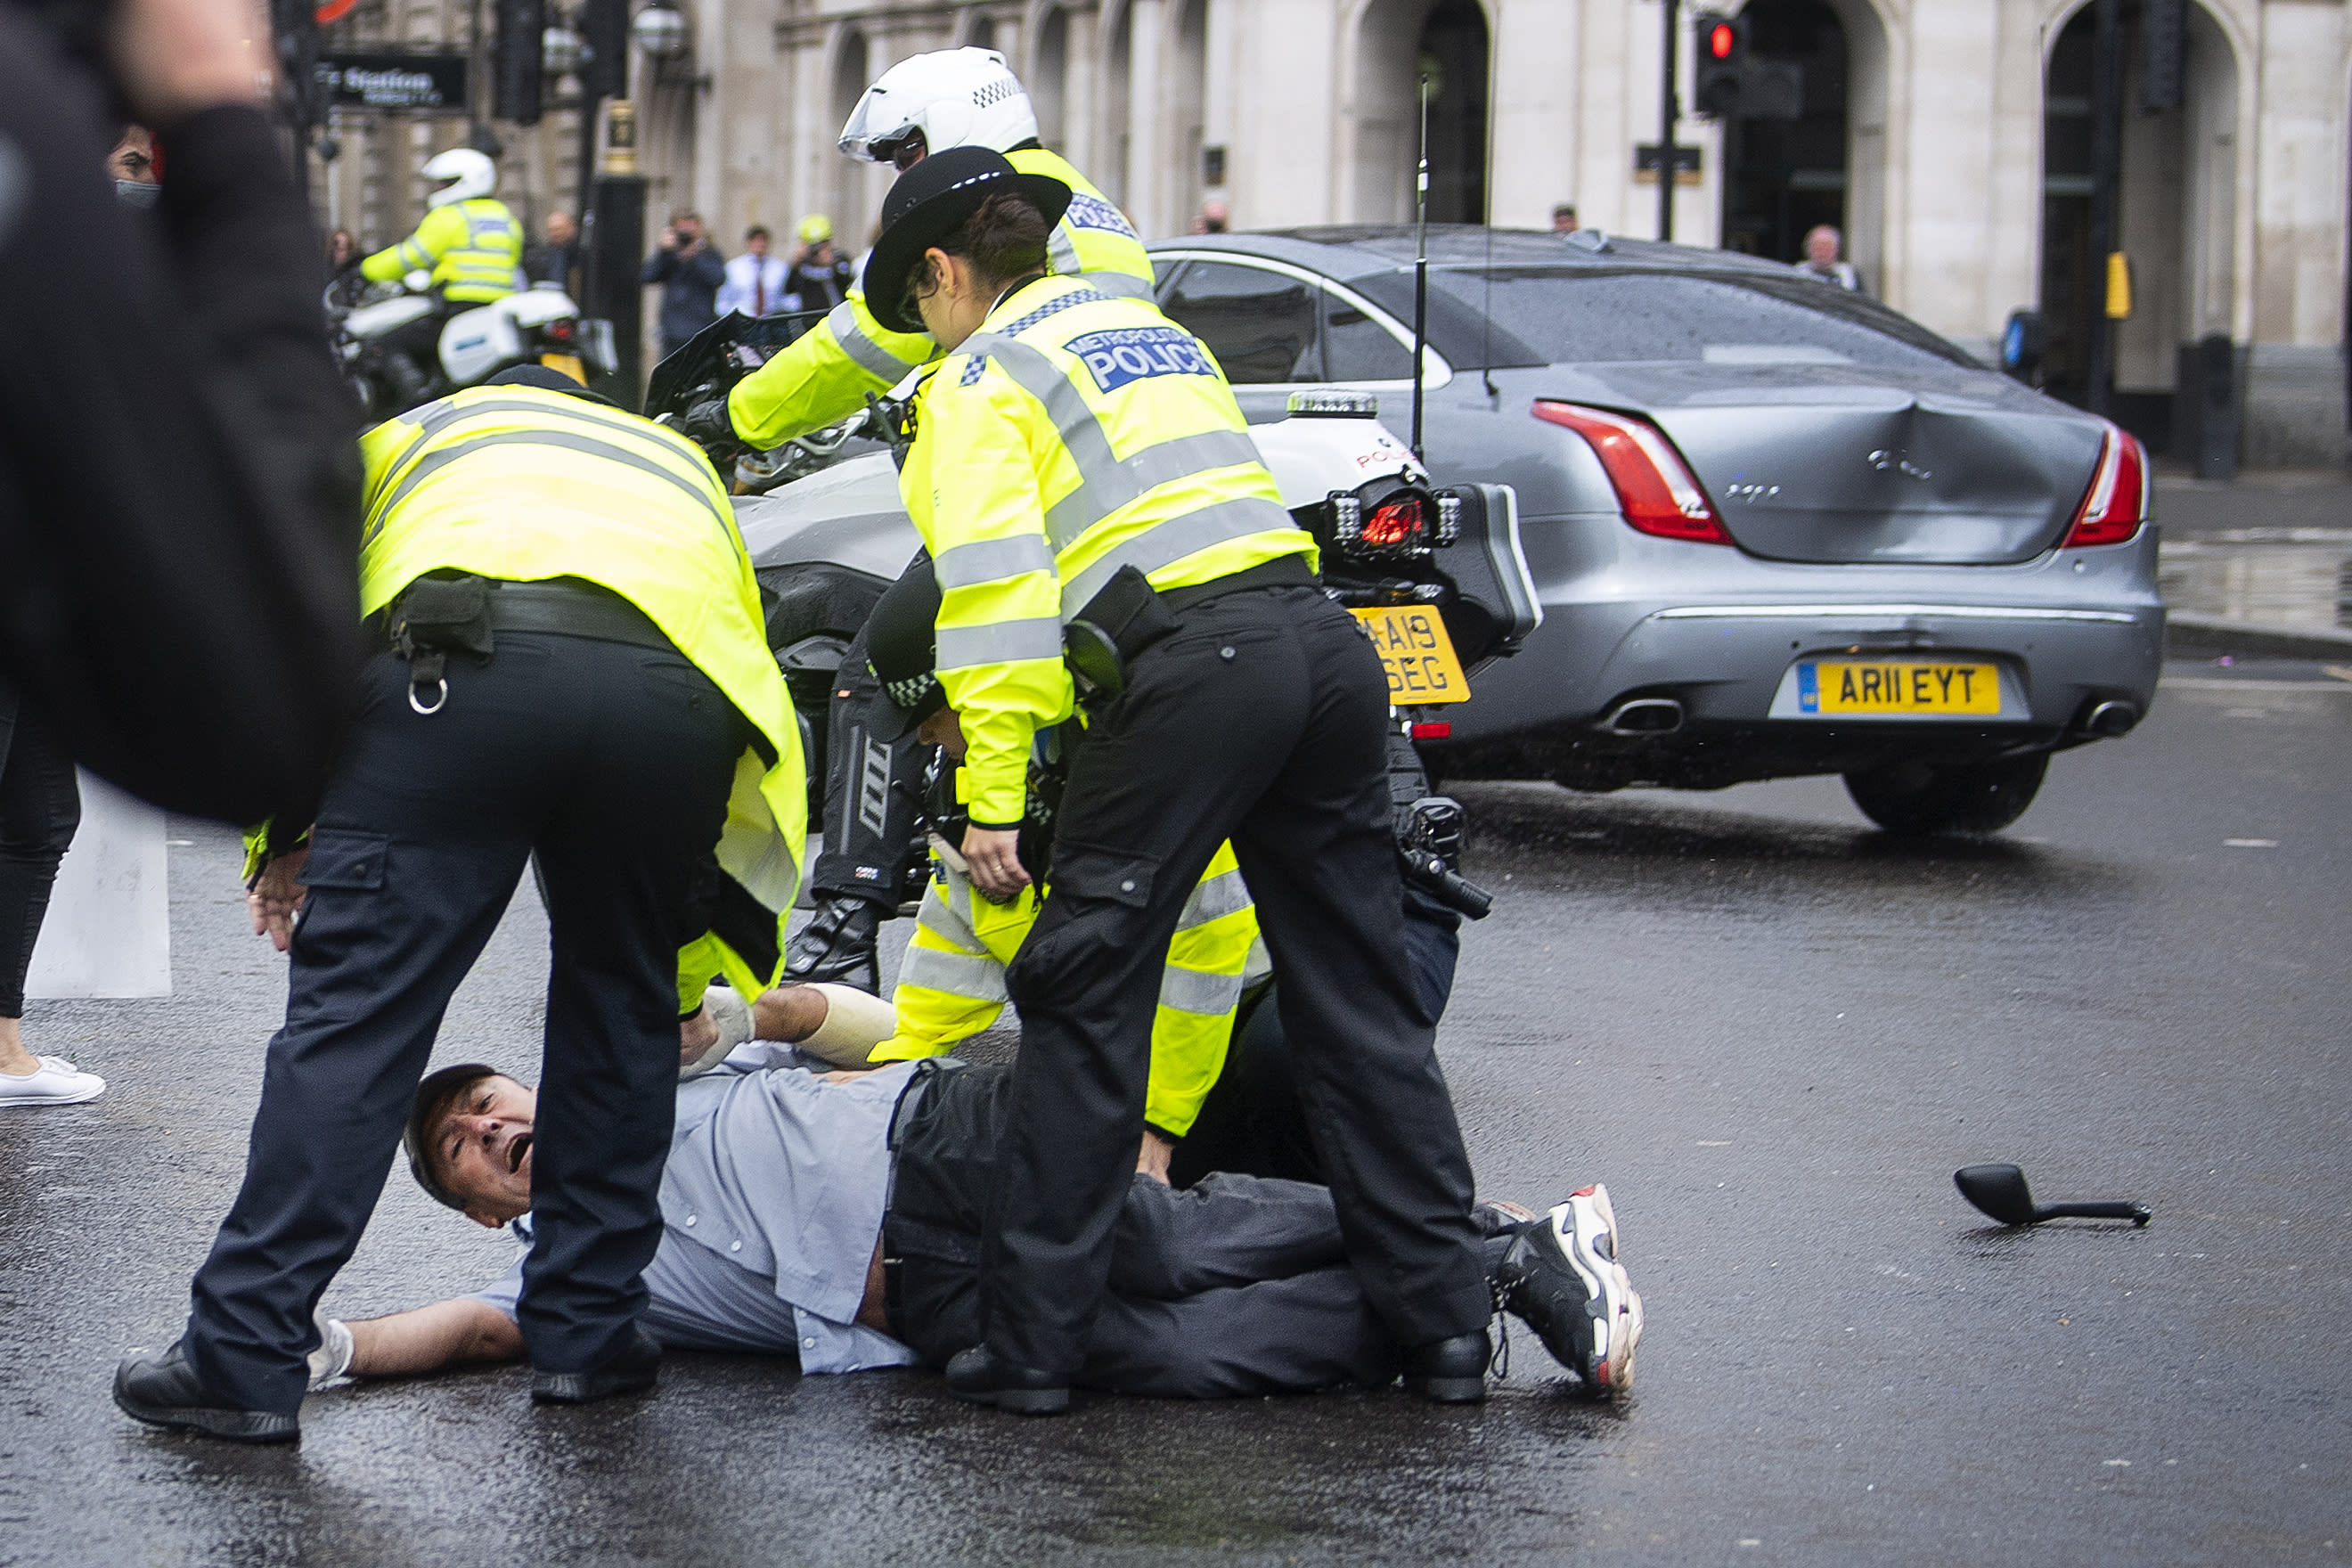 Police detain a man after he ran in front of Prime Minister Boris Johnson's car (in background with dent) as it left the Houses of Parliament, Westminster. The man, who had been demonstrating about Turkey's operation against Kurdish rebels in northern Iraq, was taken into the Palace of Westminster by officers. (Photo by Victoria Jones/PA Images via Getty Images)